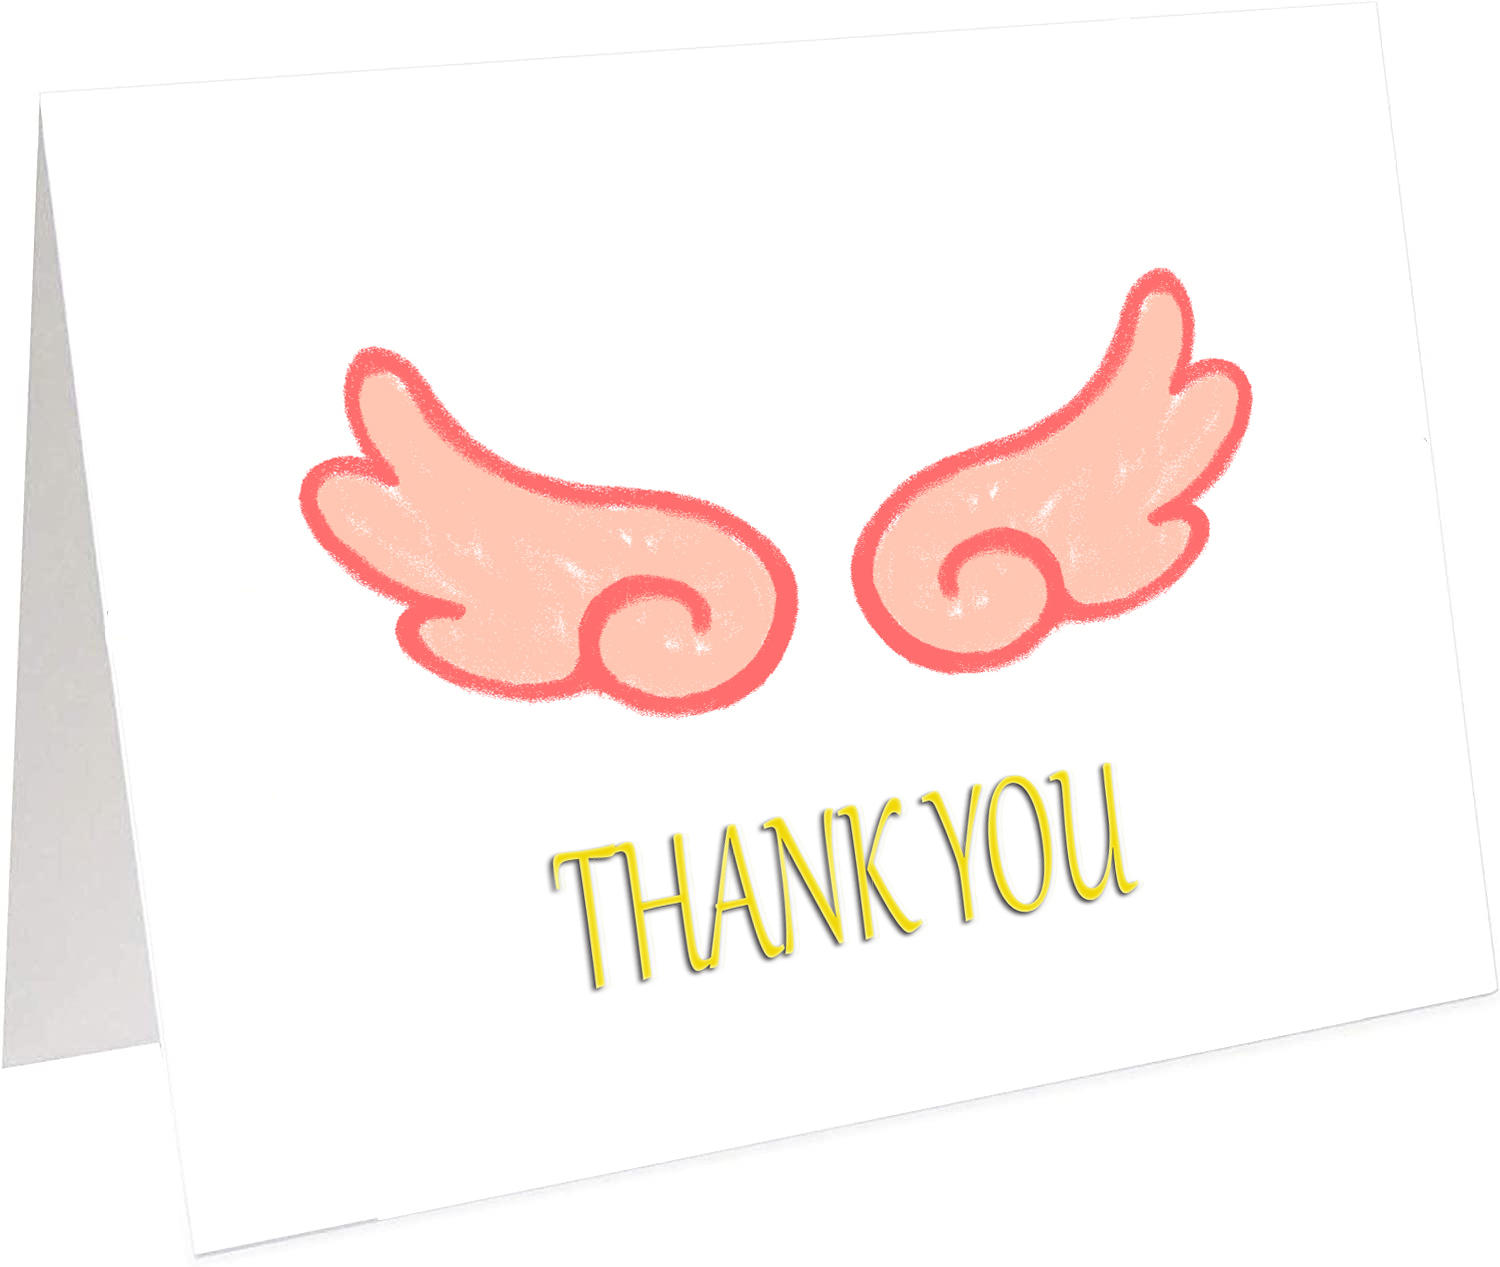 Happy Birthday Greeting Card Thank You Greeting Card,Thank You Cards With Box for Amazon